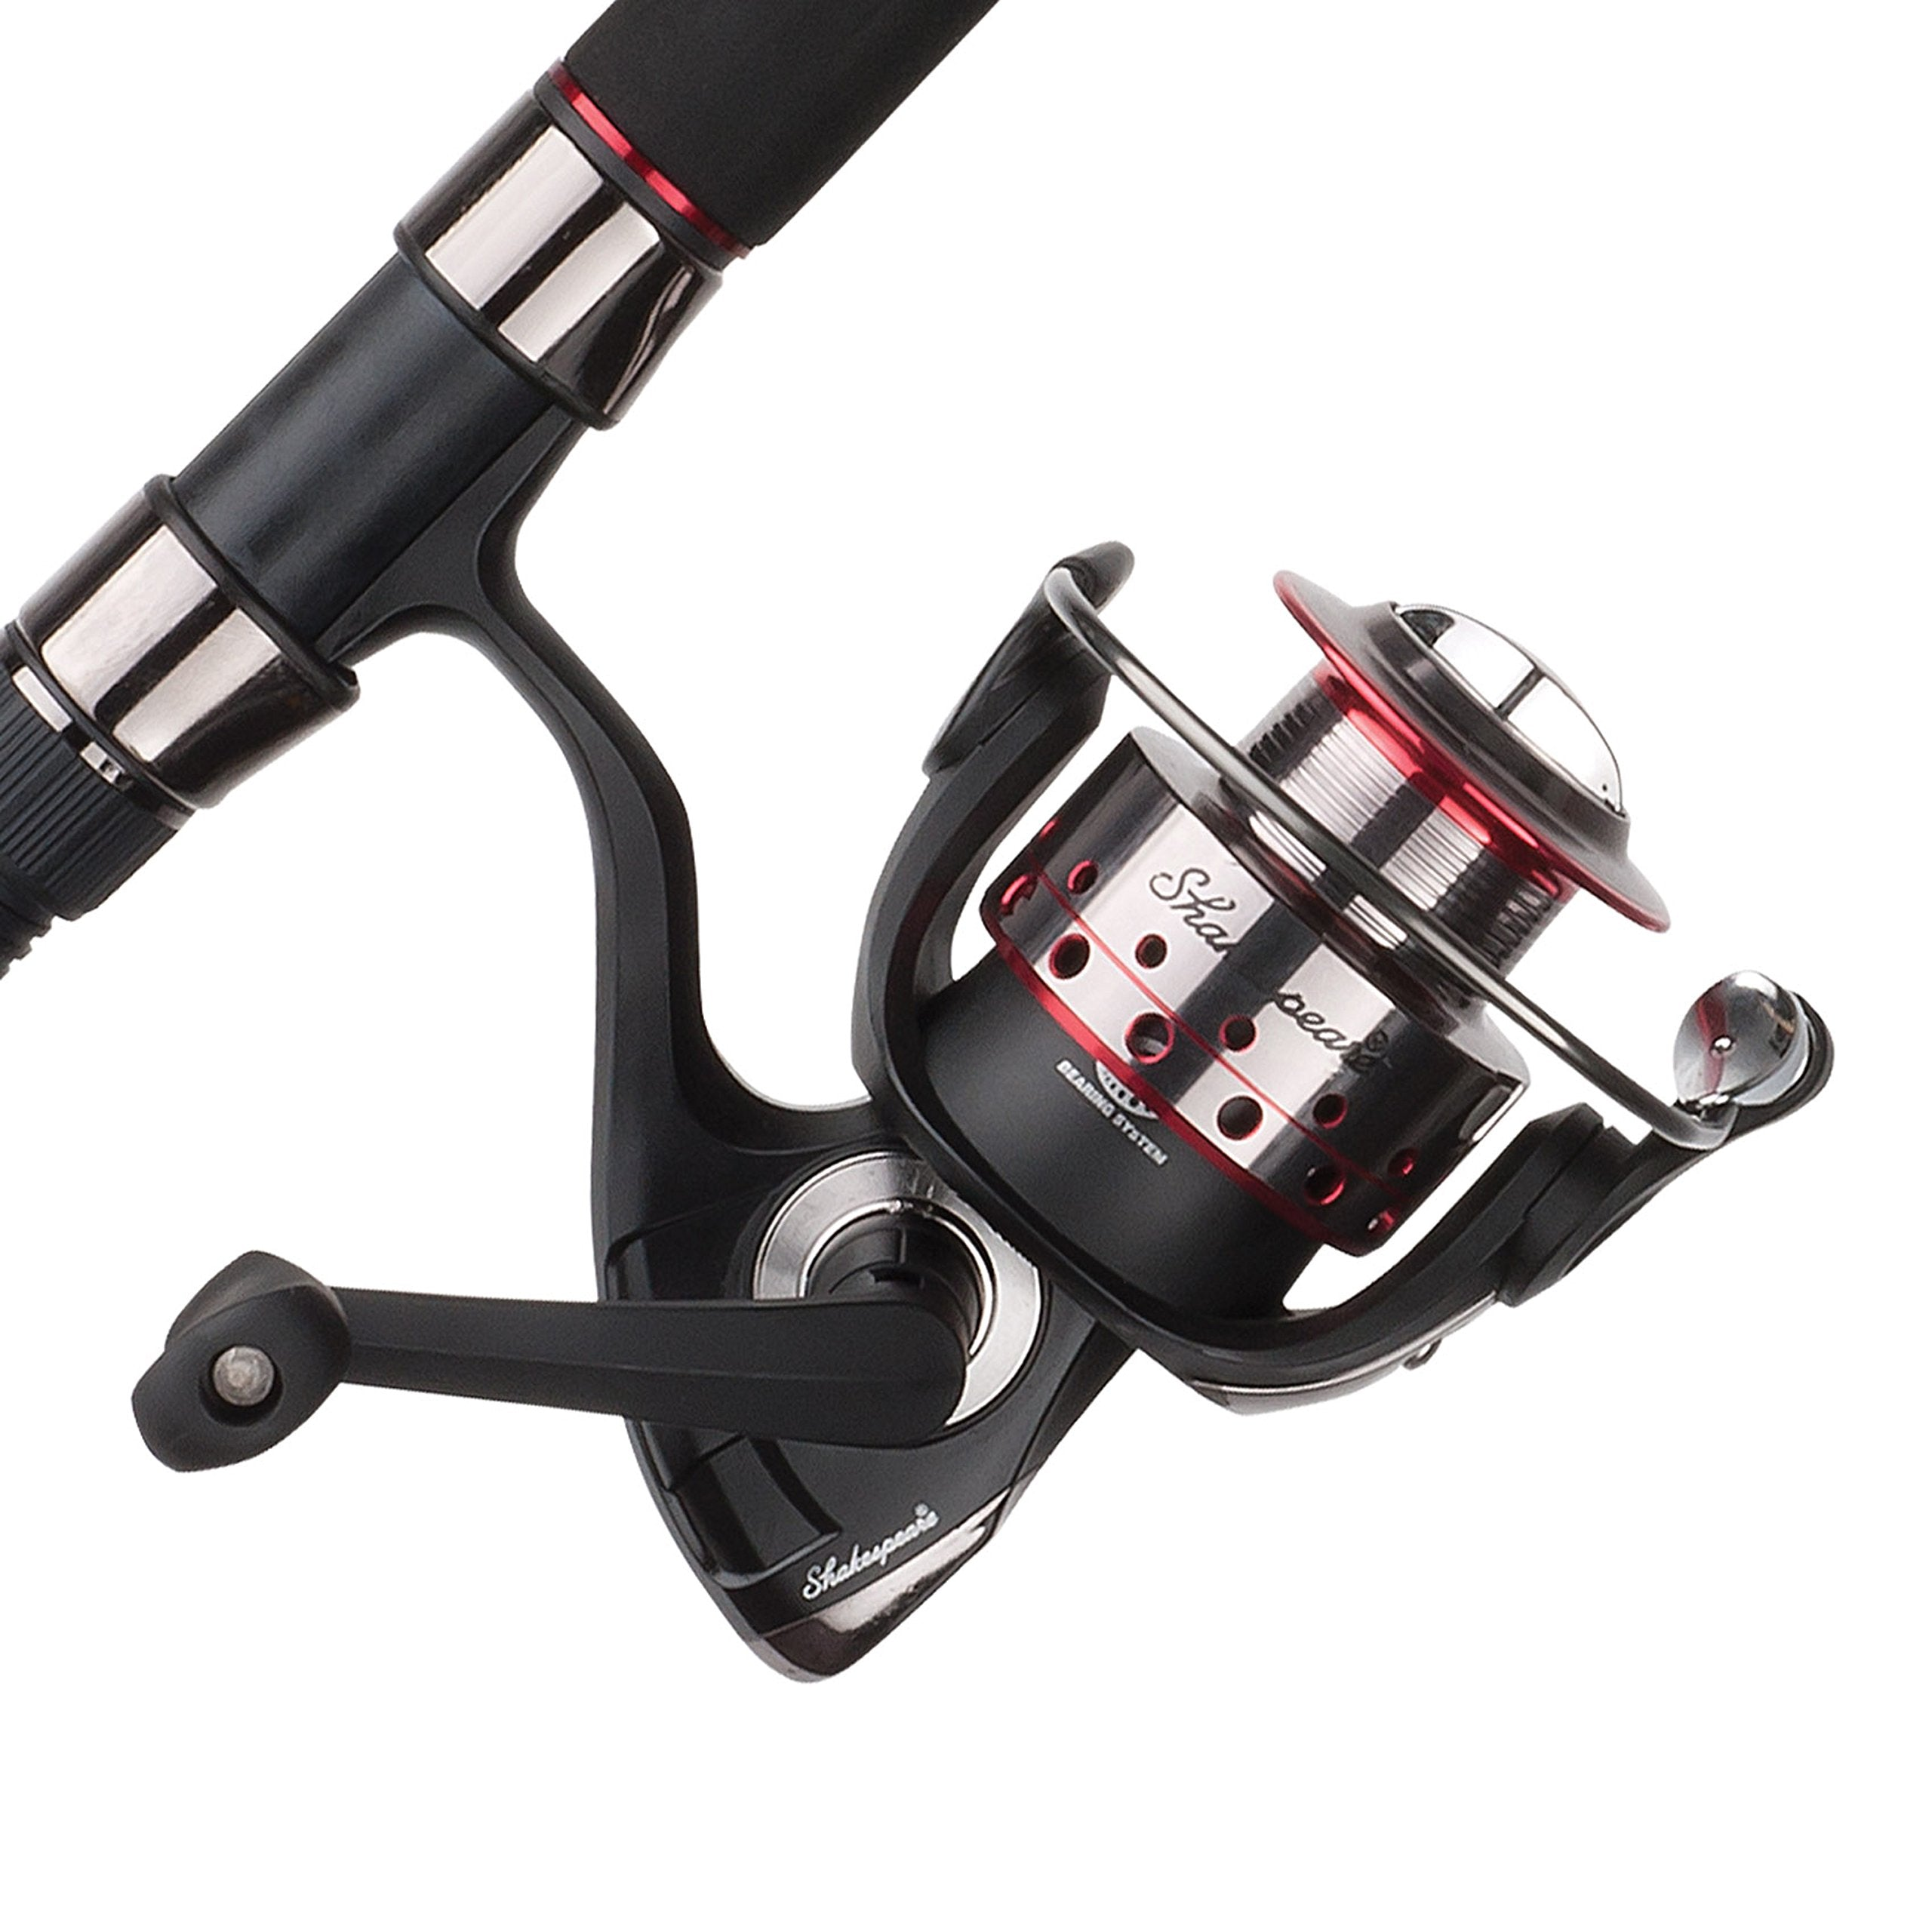 Ugly Stik USSP602M30CB Shakespeare USSP602M/30CBO GX2 Spinning Fishing Reel and Rod Combo, 6 Feet, Medium Power - Ctfitnesswear